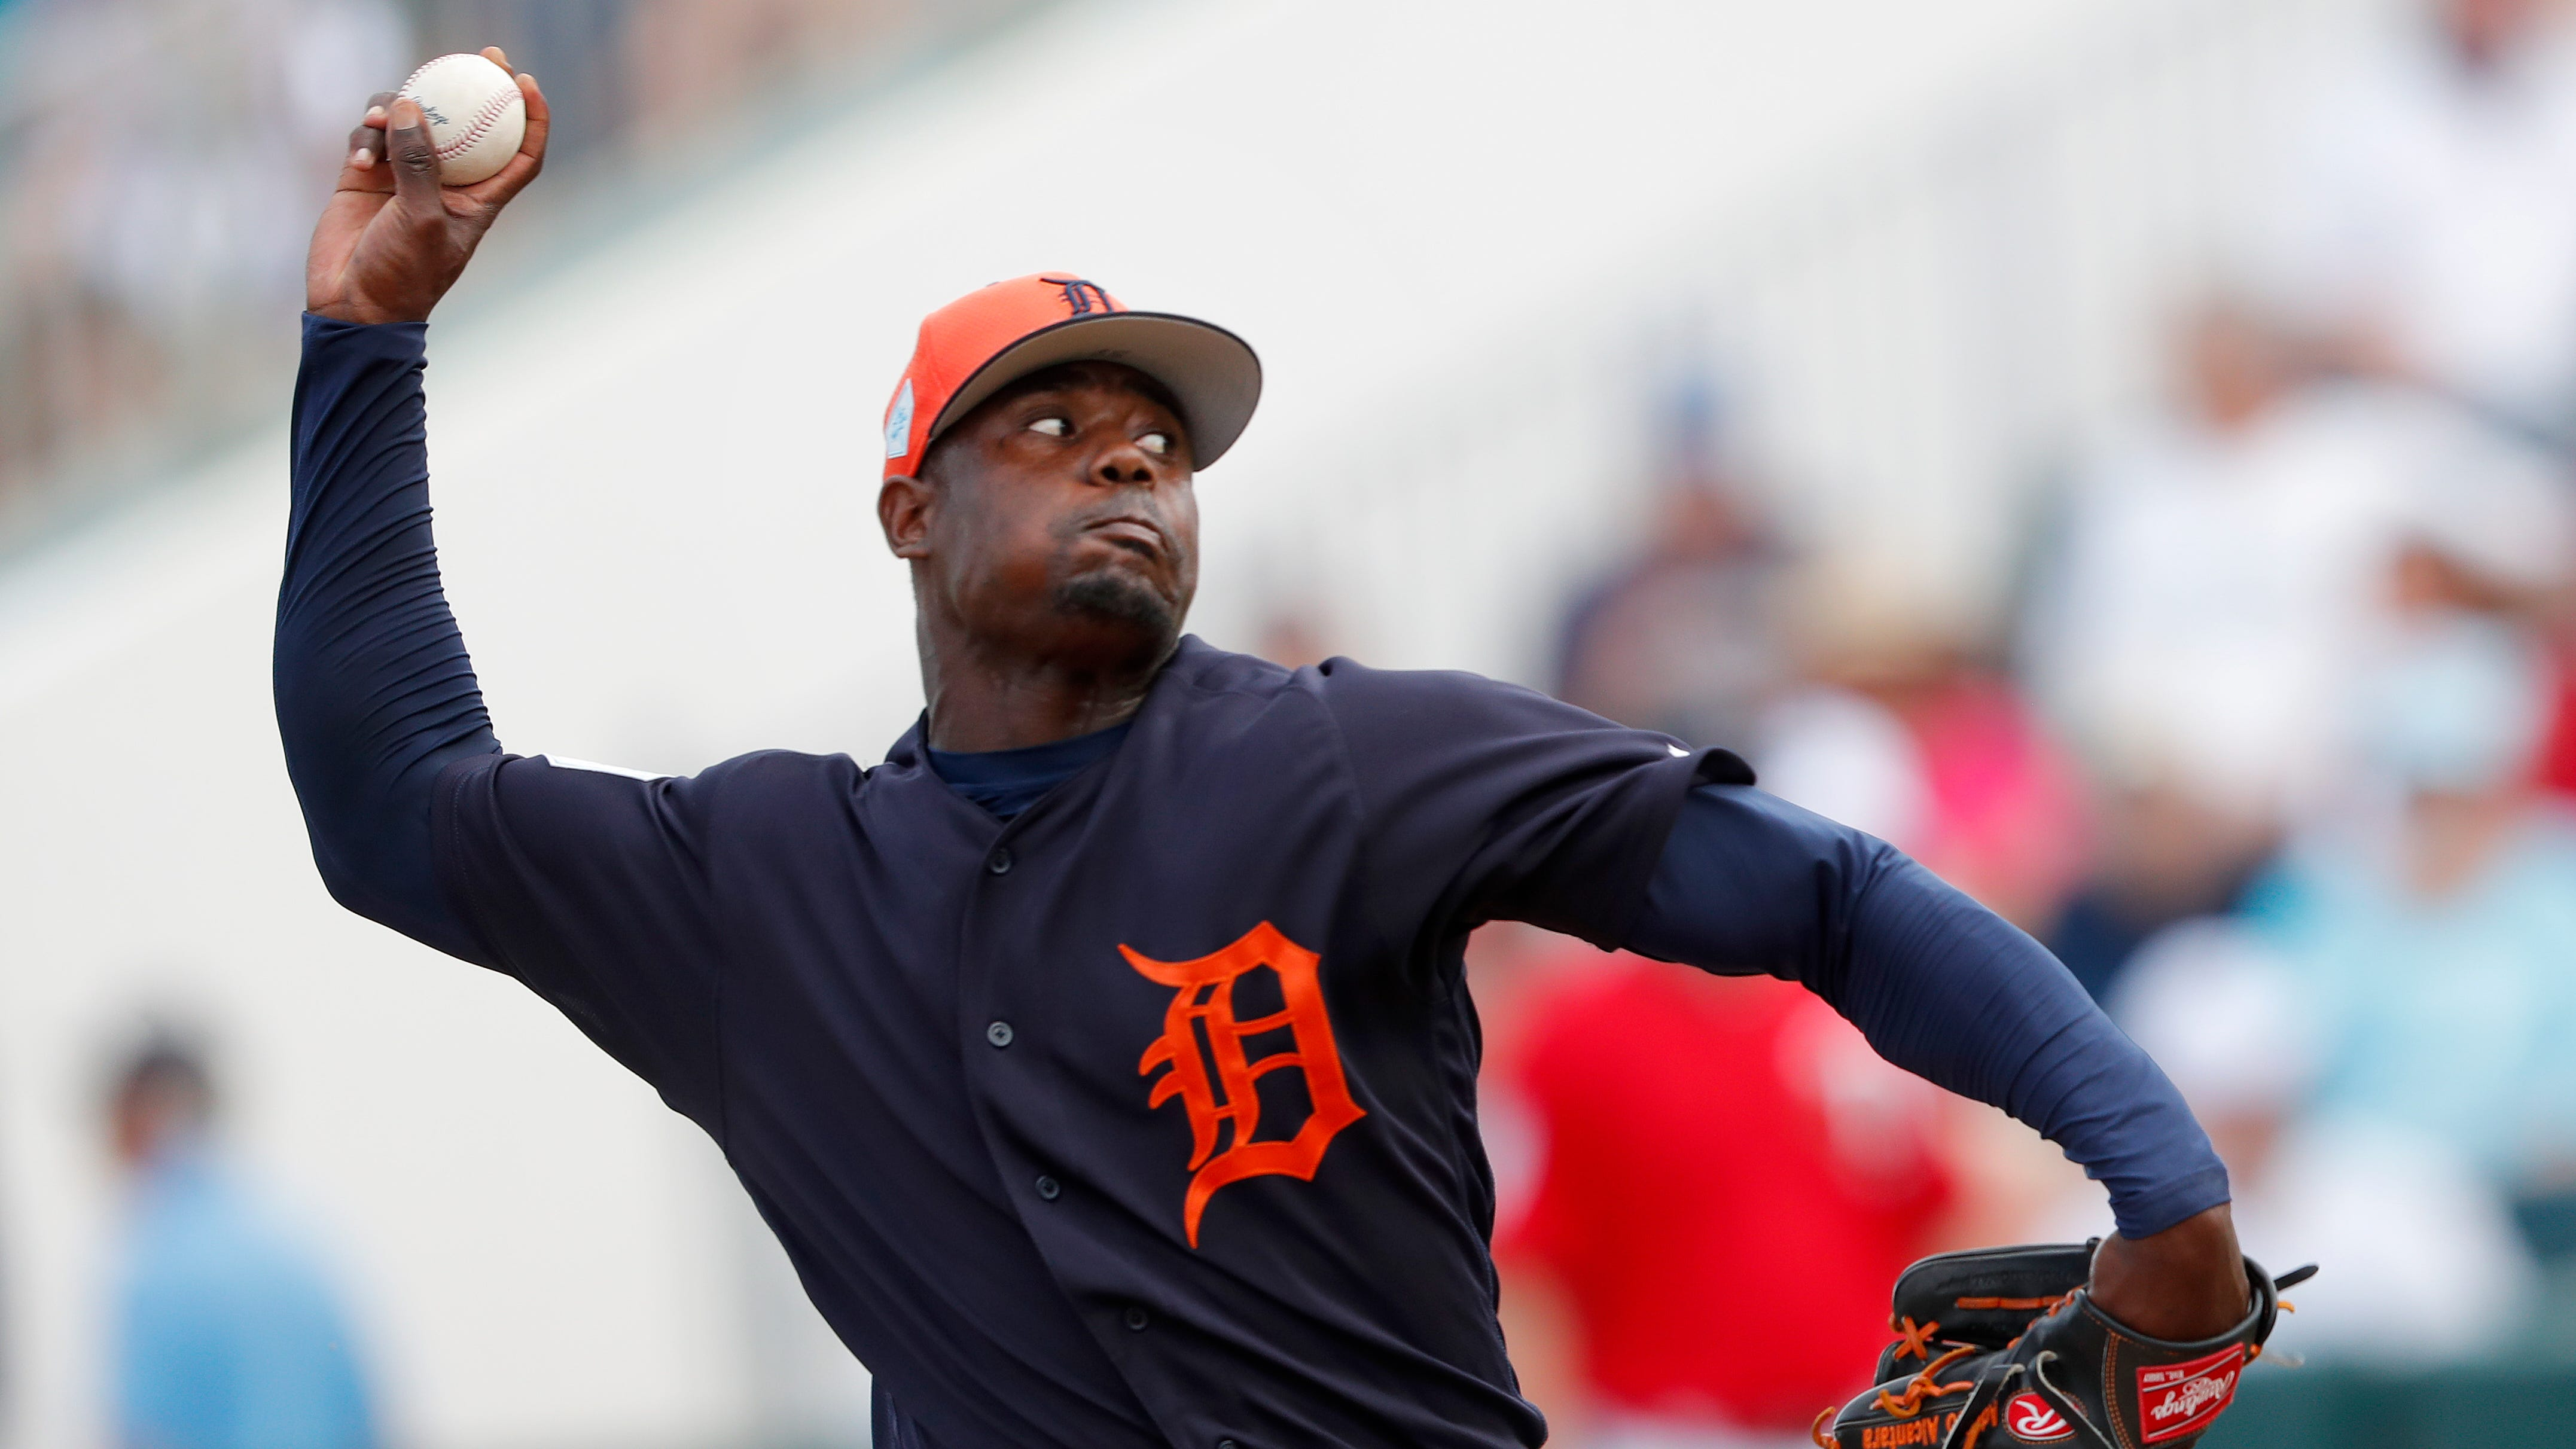 Power up: Tigers have added some muscle to the bullpen mix